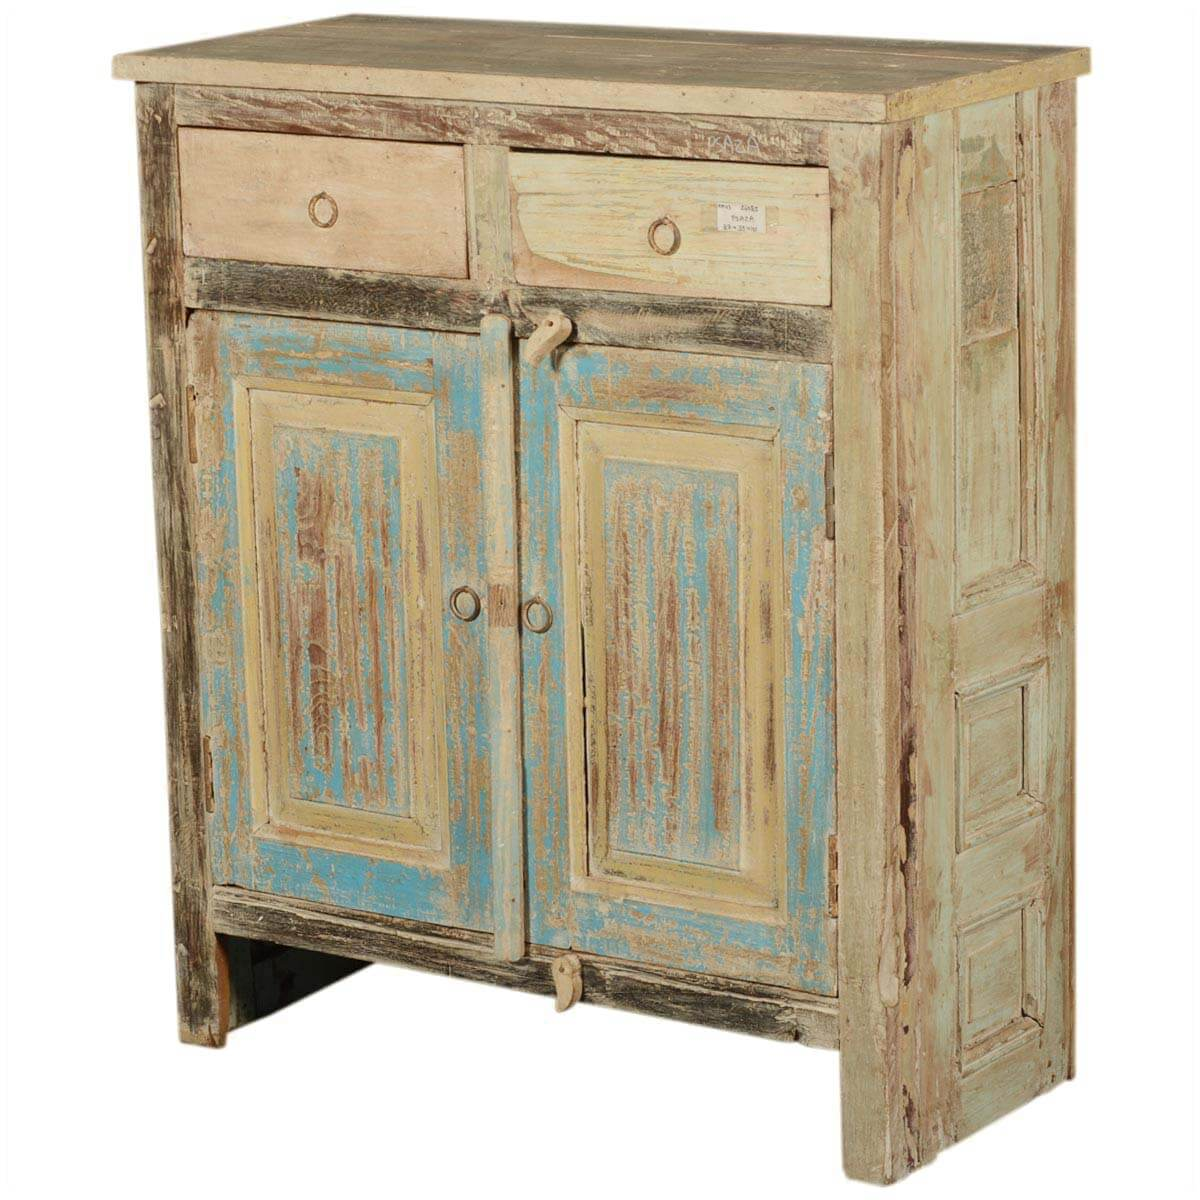 Dellroy Rustic Reclaimed Wood Free Standing 2 Drawer